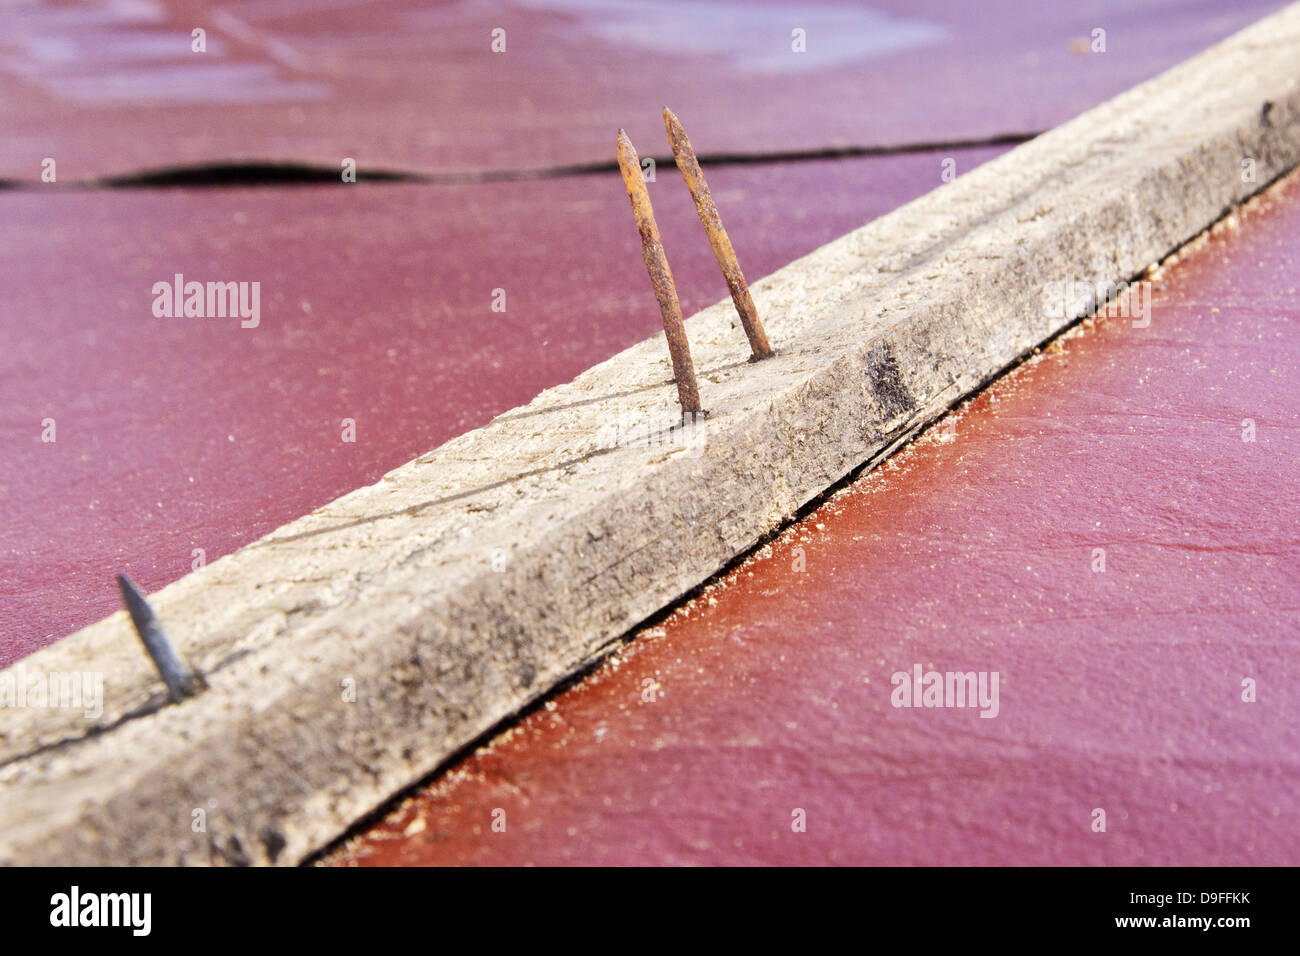 Rostige Naegel in einer Holzlatte |Rusty nails into a wooden crossbar| - Stock Image